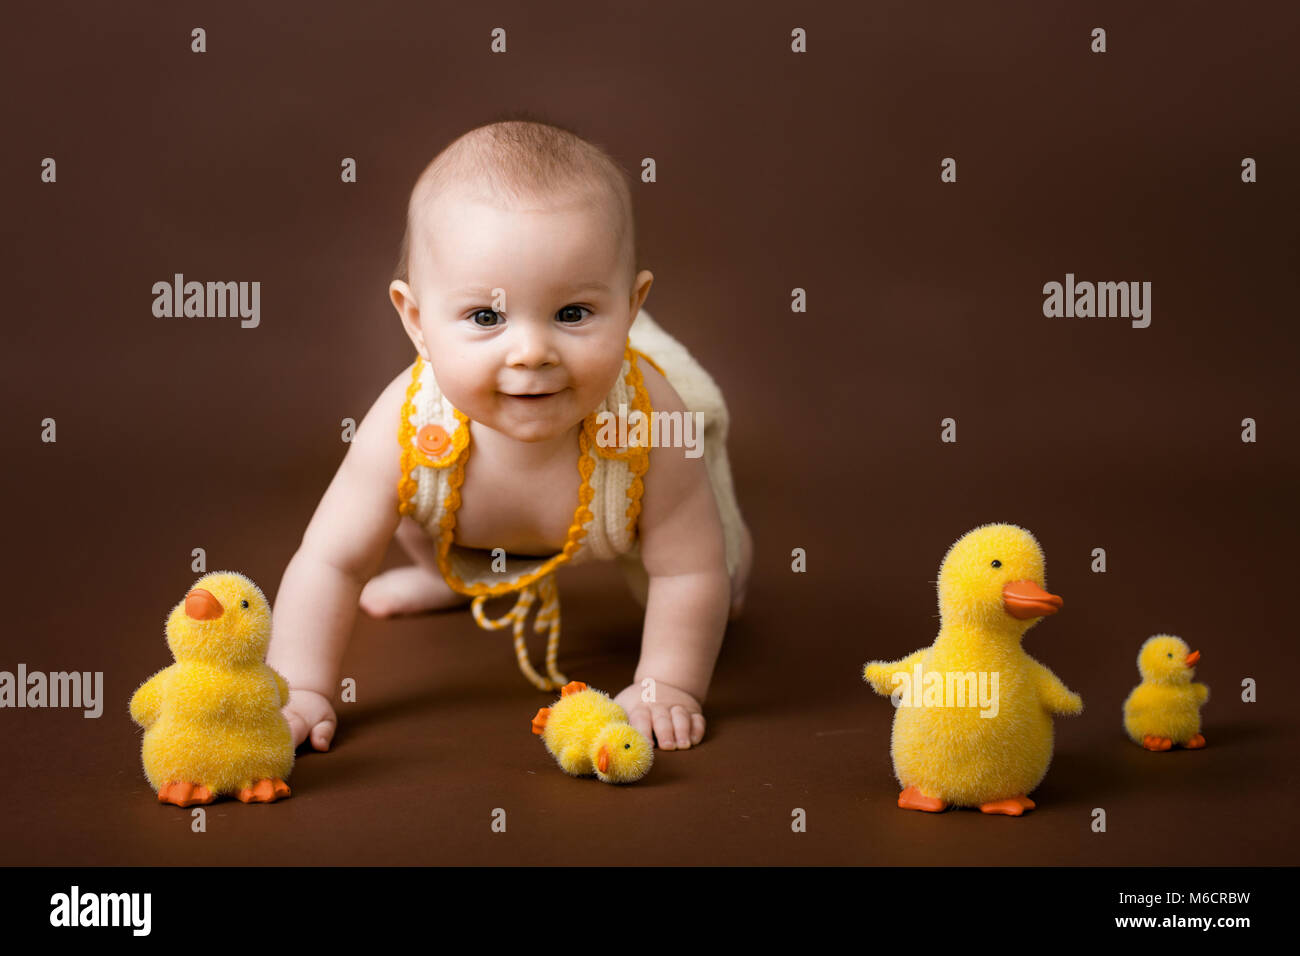 Little baby boy, playing with decorative ducks, isolated on brown ...